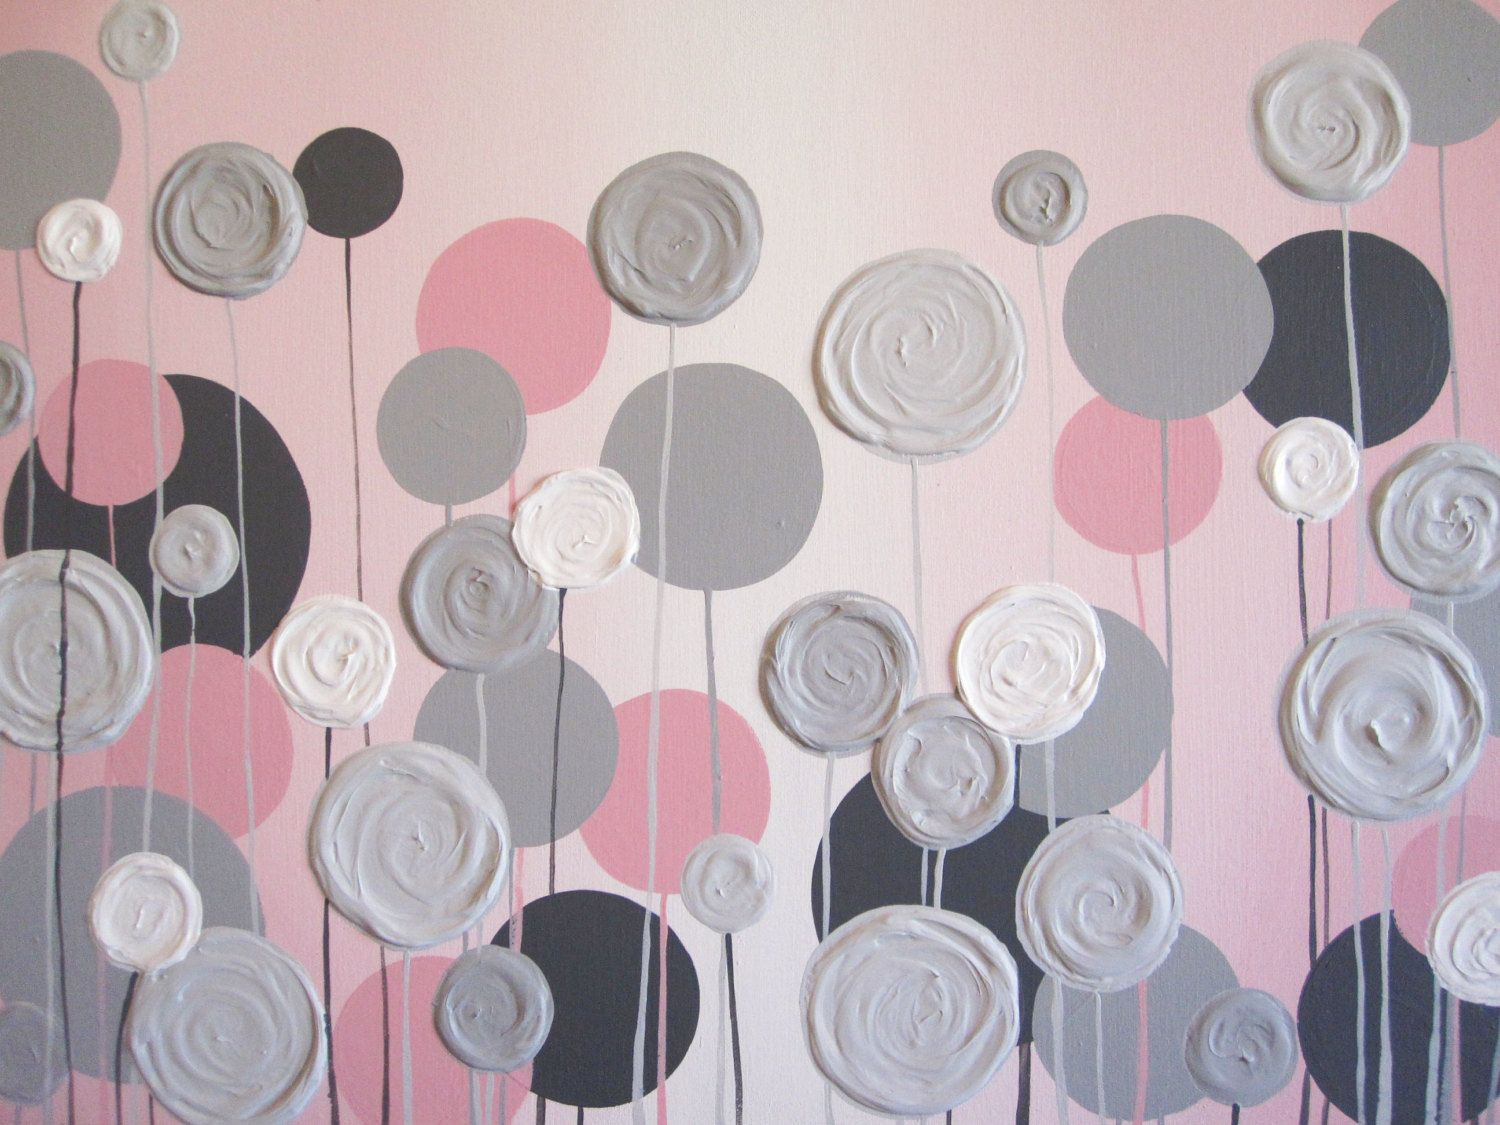 Red Black And Gray Wall Decor: Kids Wall Art Pink And Grey Textured Flowers 18x24 Acrylic